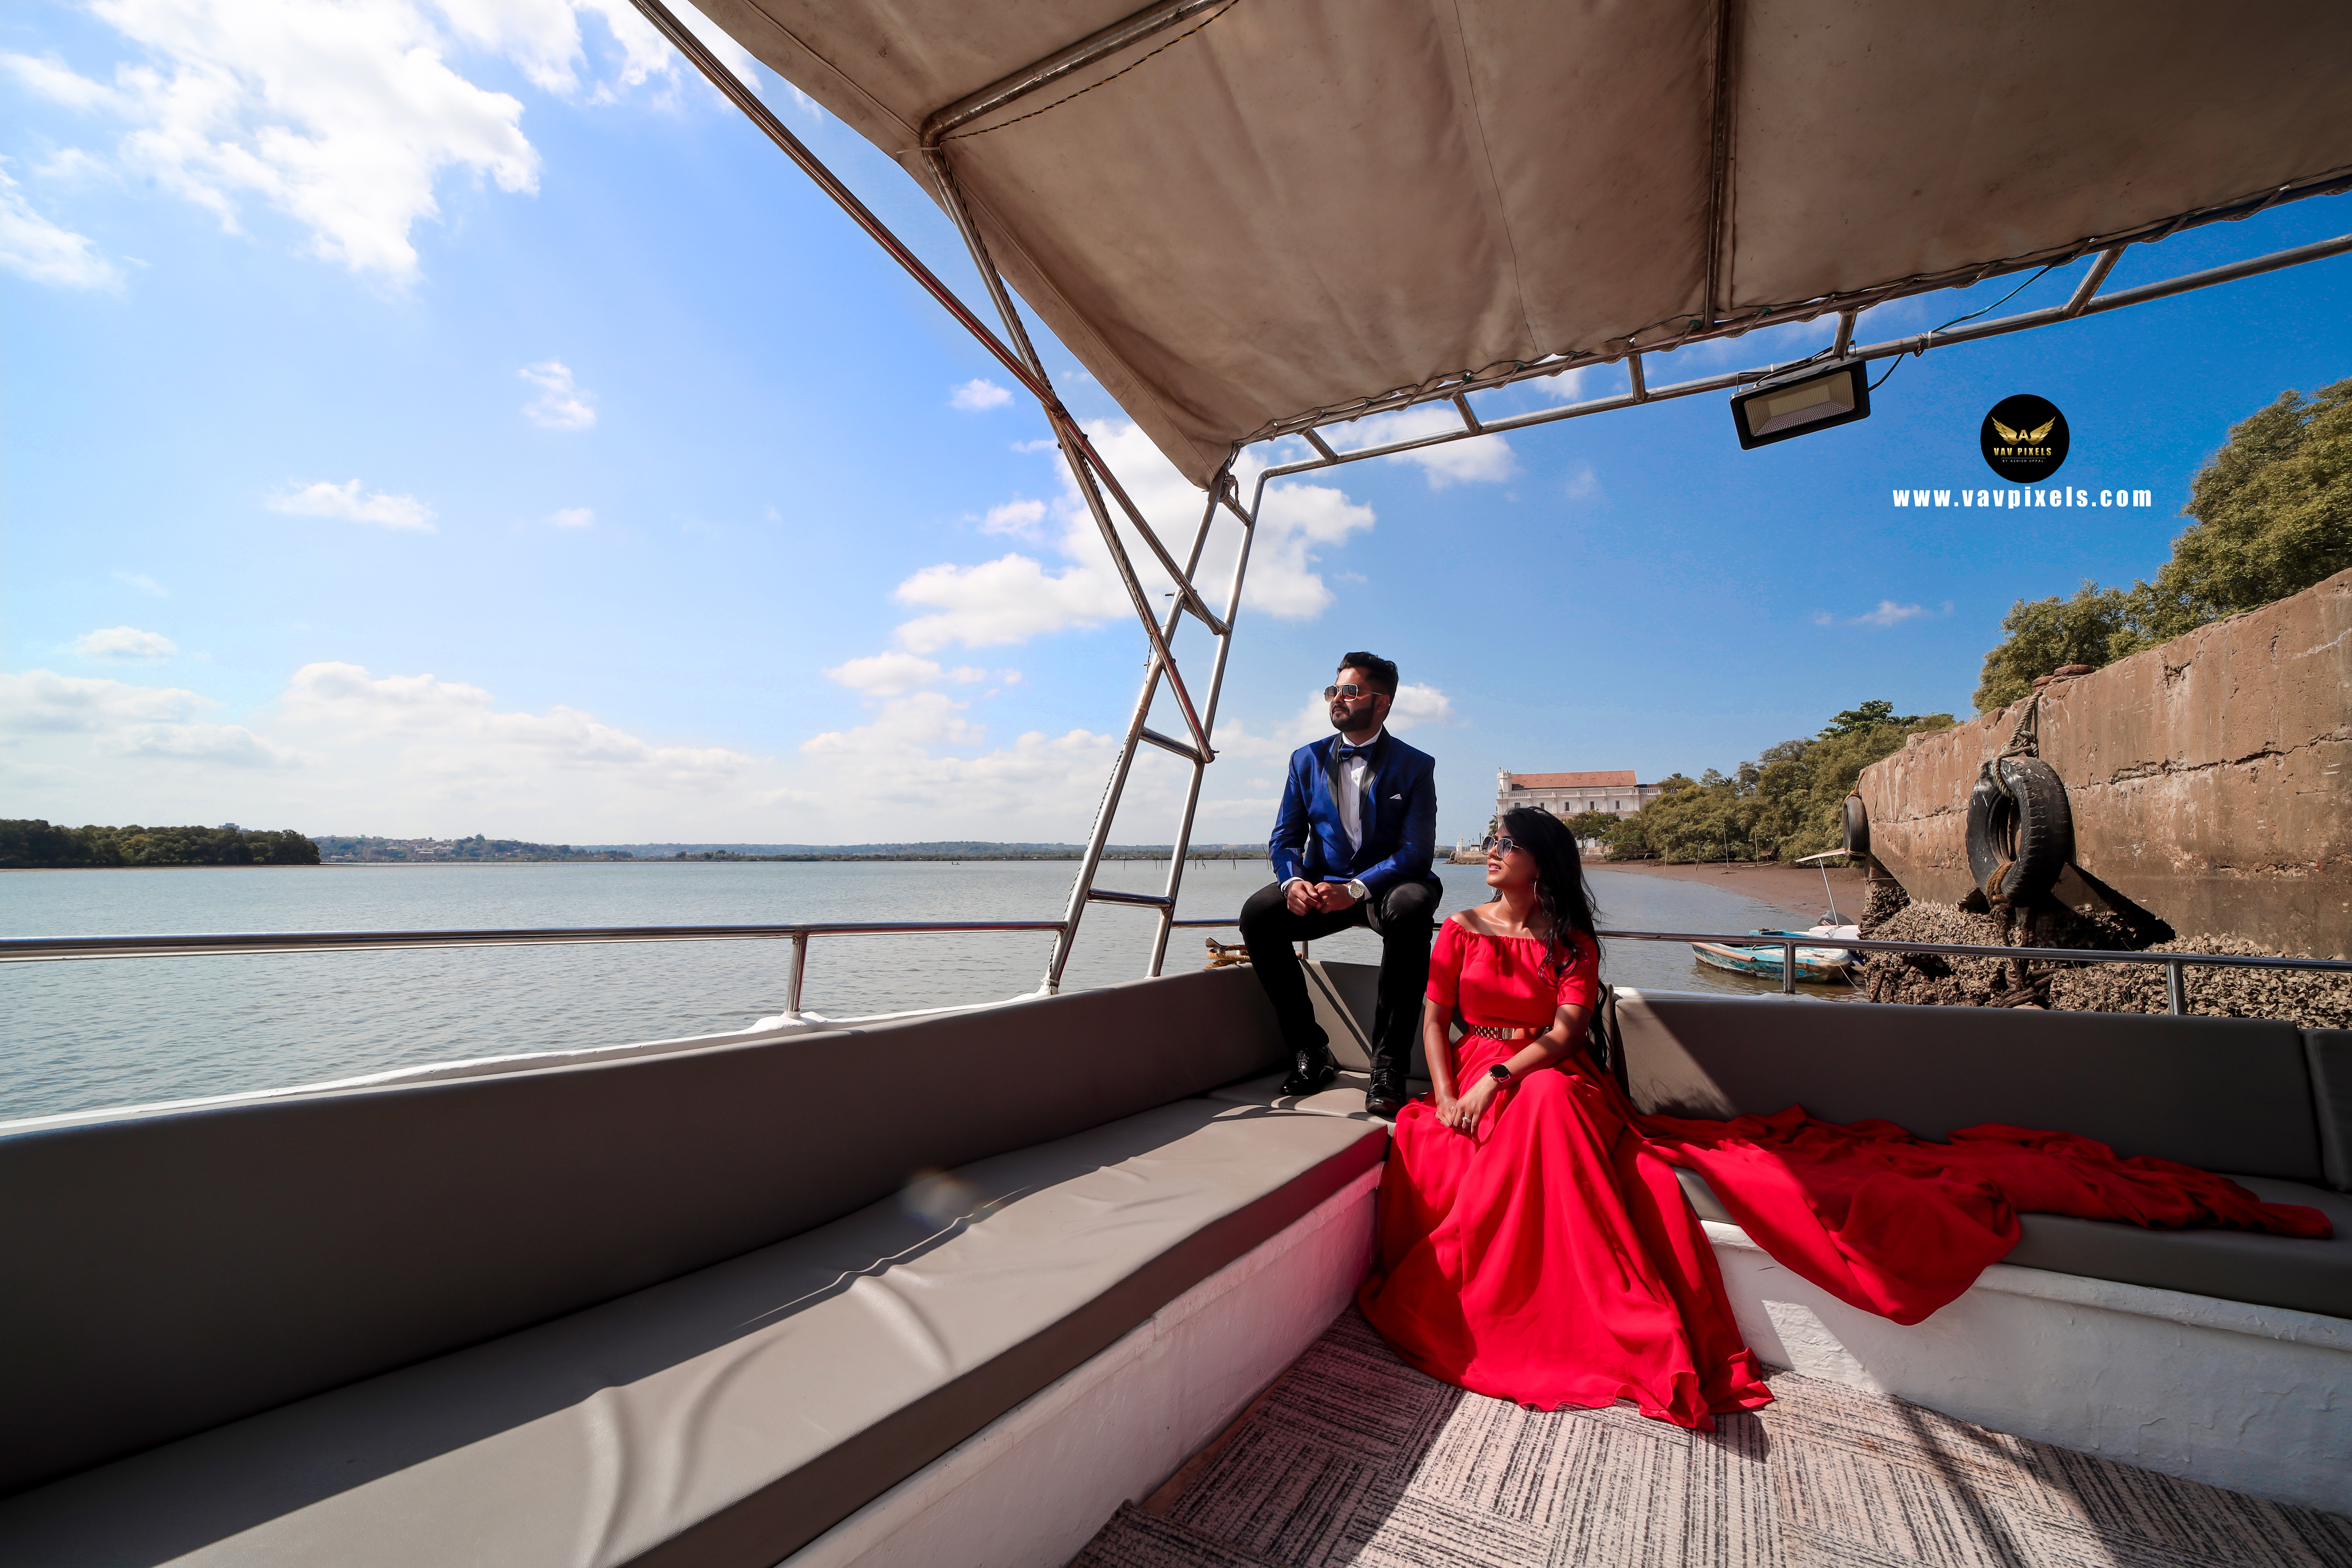 Bride and groom pre wedding photoshoot on a deck